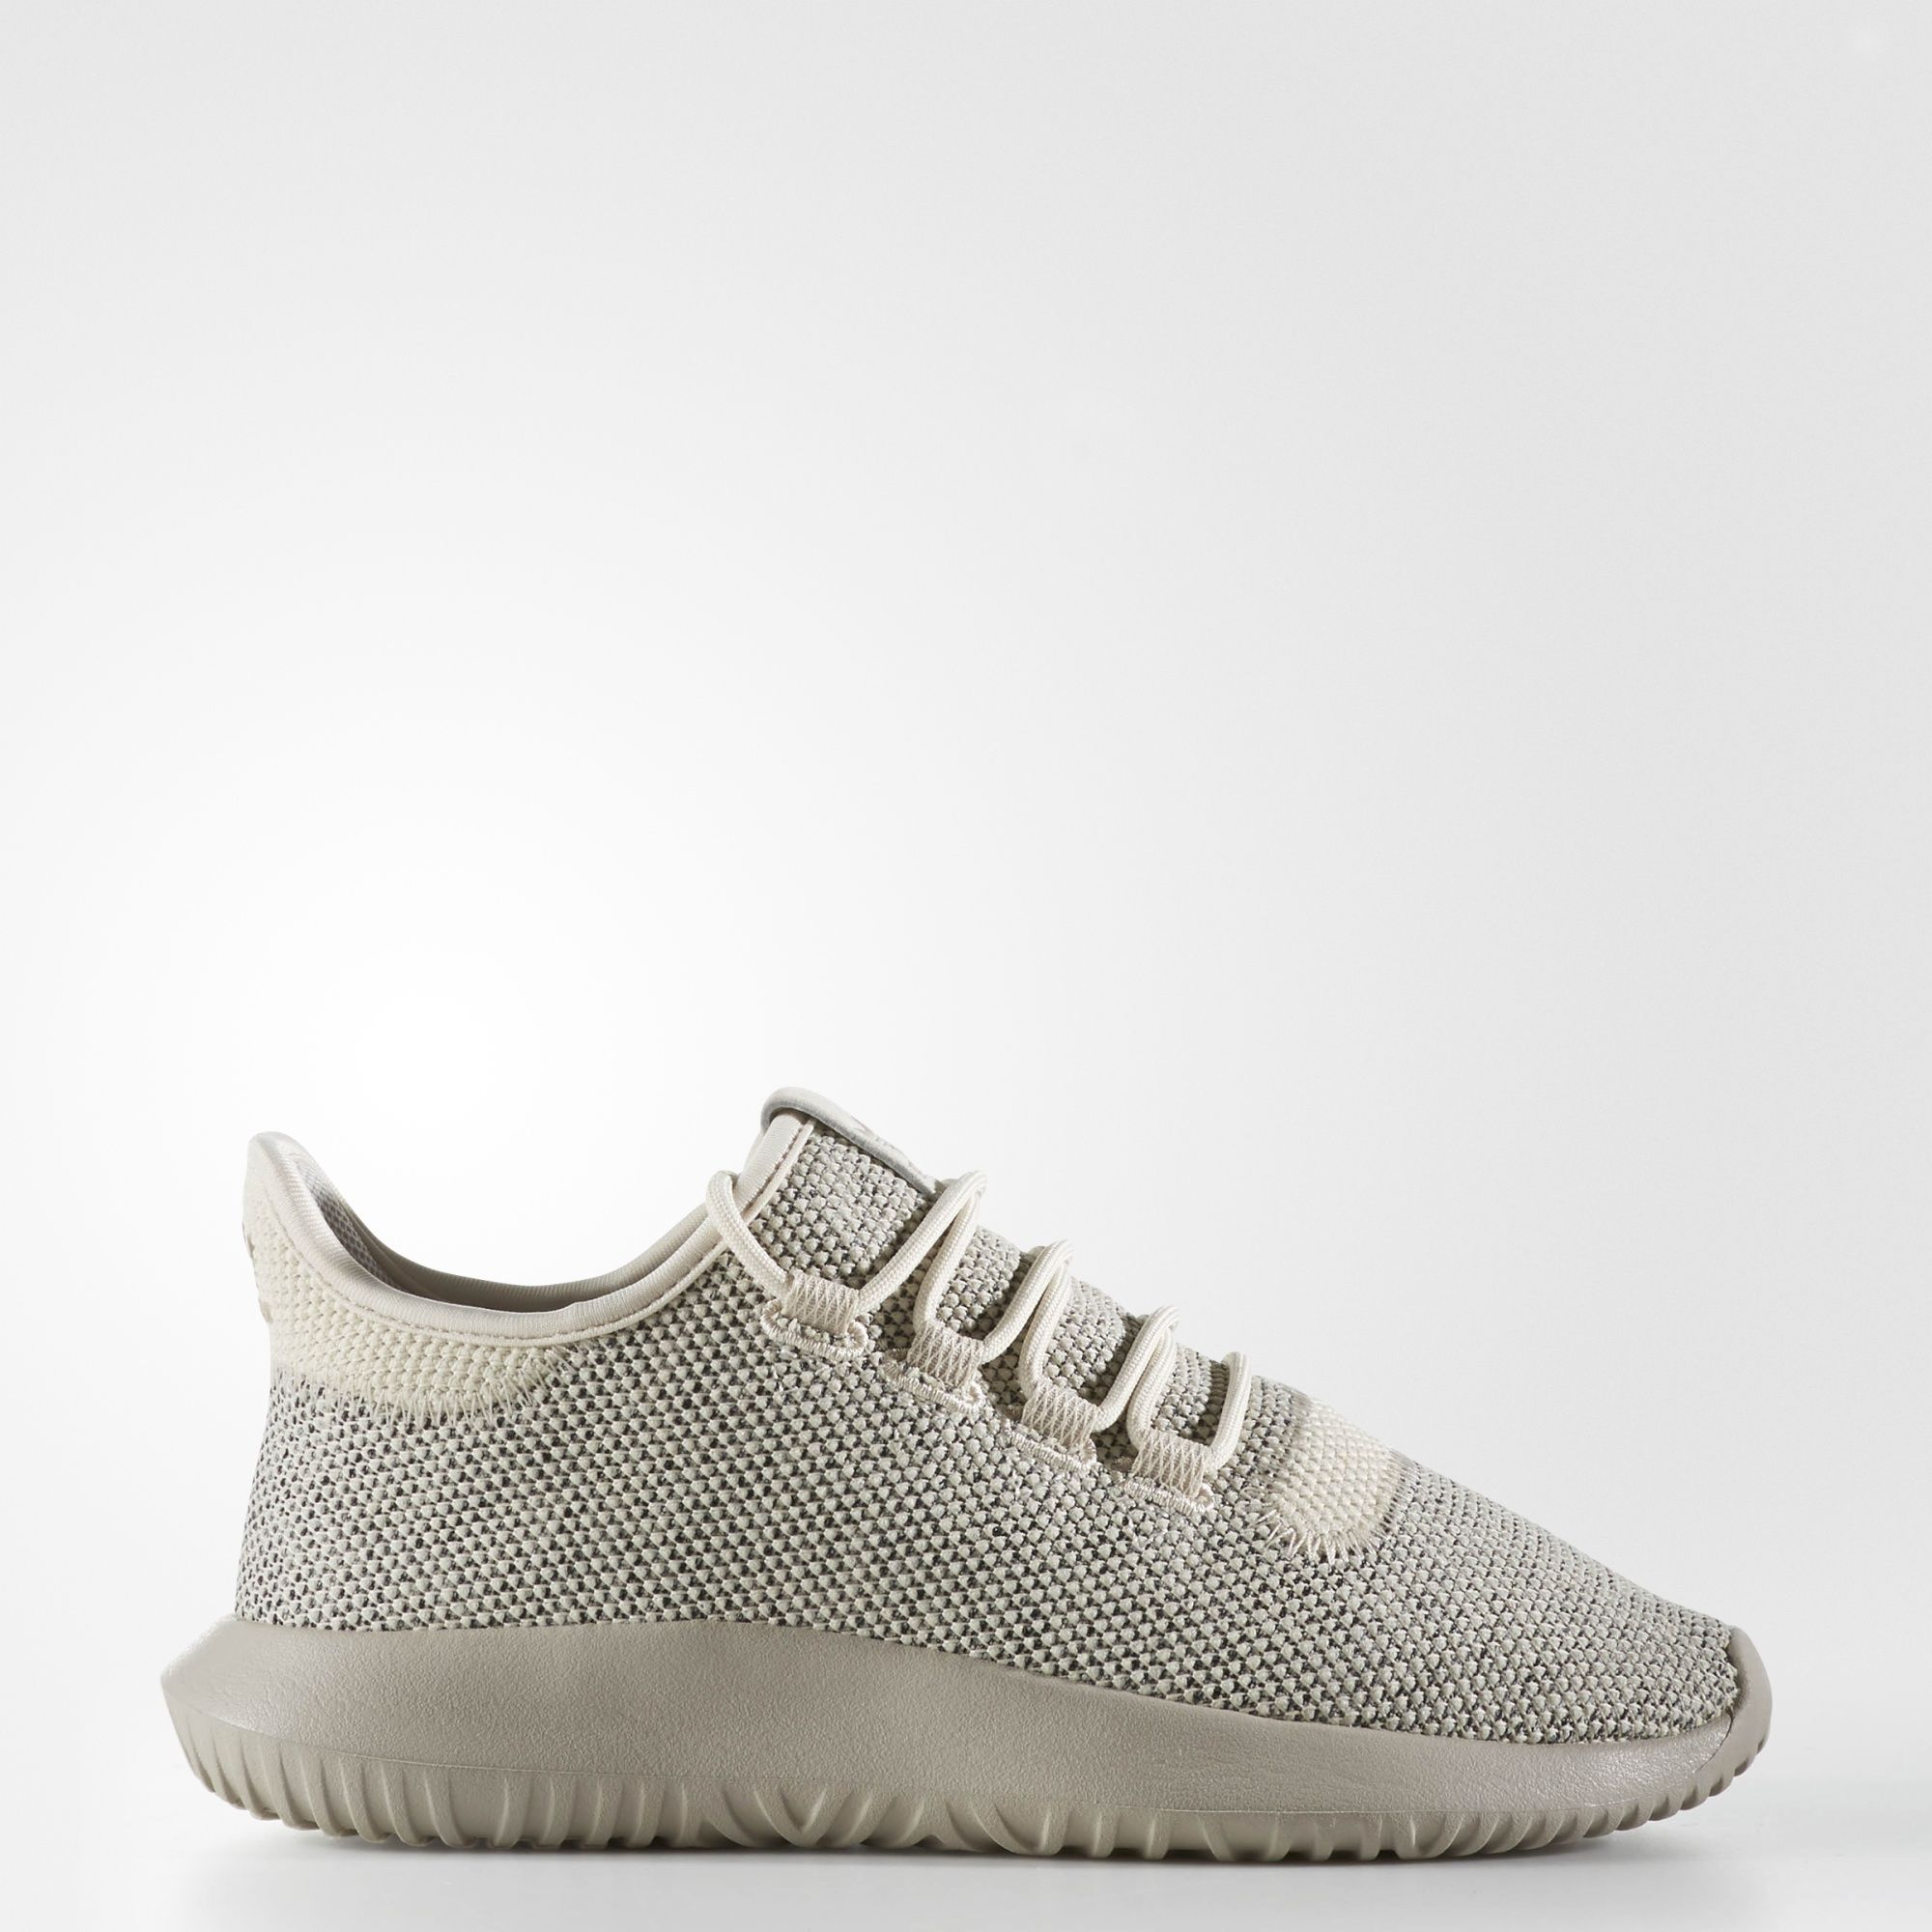 An edgy, future-focused take on adidas running-inspired heritage, these juniors' Tubular shoes redefine street style with an identity all their own. They're made in mélange knit material with an allover 3D diamond pattern. An innovative fold-over tongue design gives them a comfortable fit.